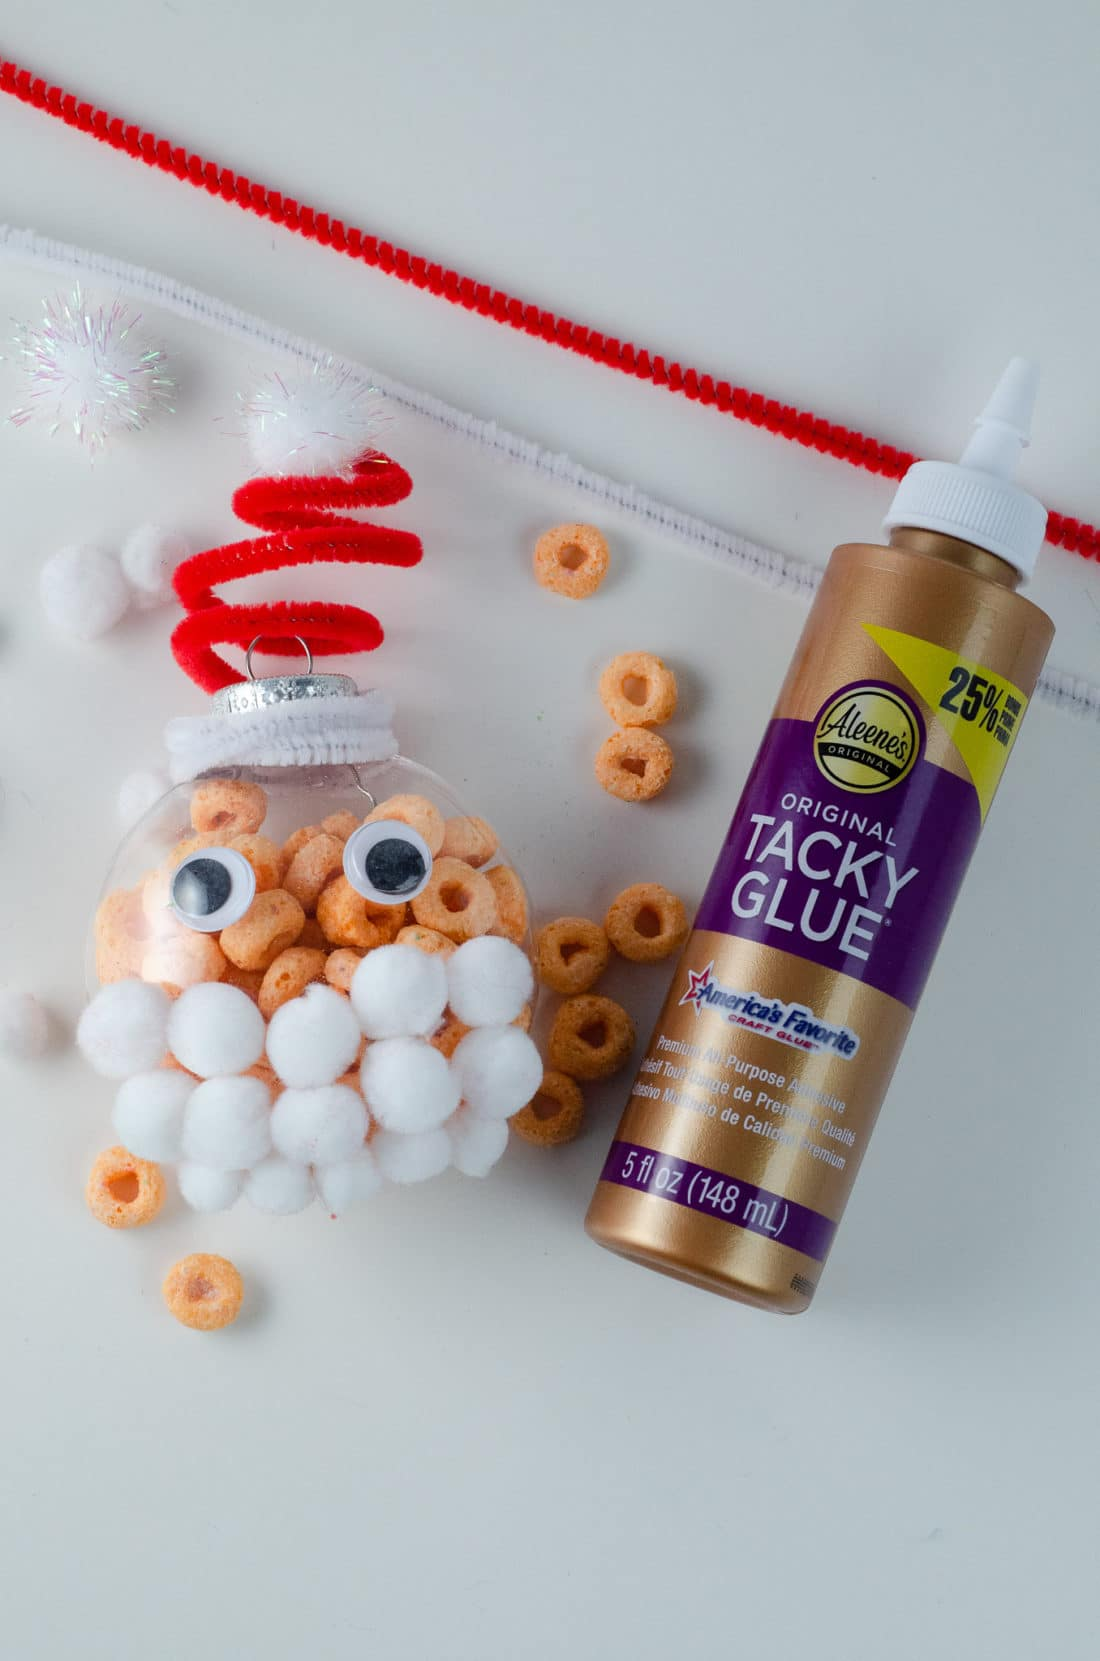 Christmas Ornament Ideas for Kids Using Cereal Santa Supplies. It's time to let the kids be the boss for this new kid-friendlyChristmas DIY. Rethink Cereal with somr my Christmas Ornament Ideas for Kids Using Cereal.